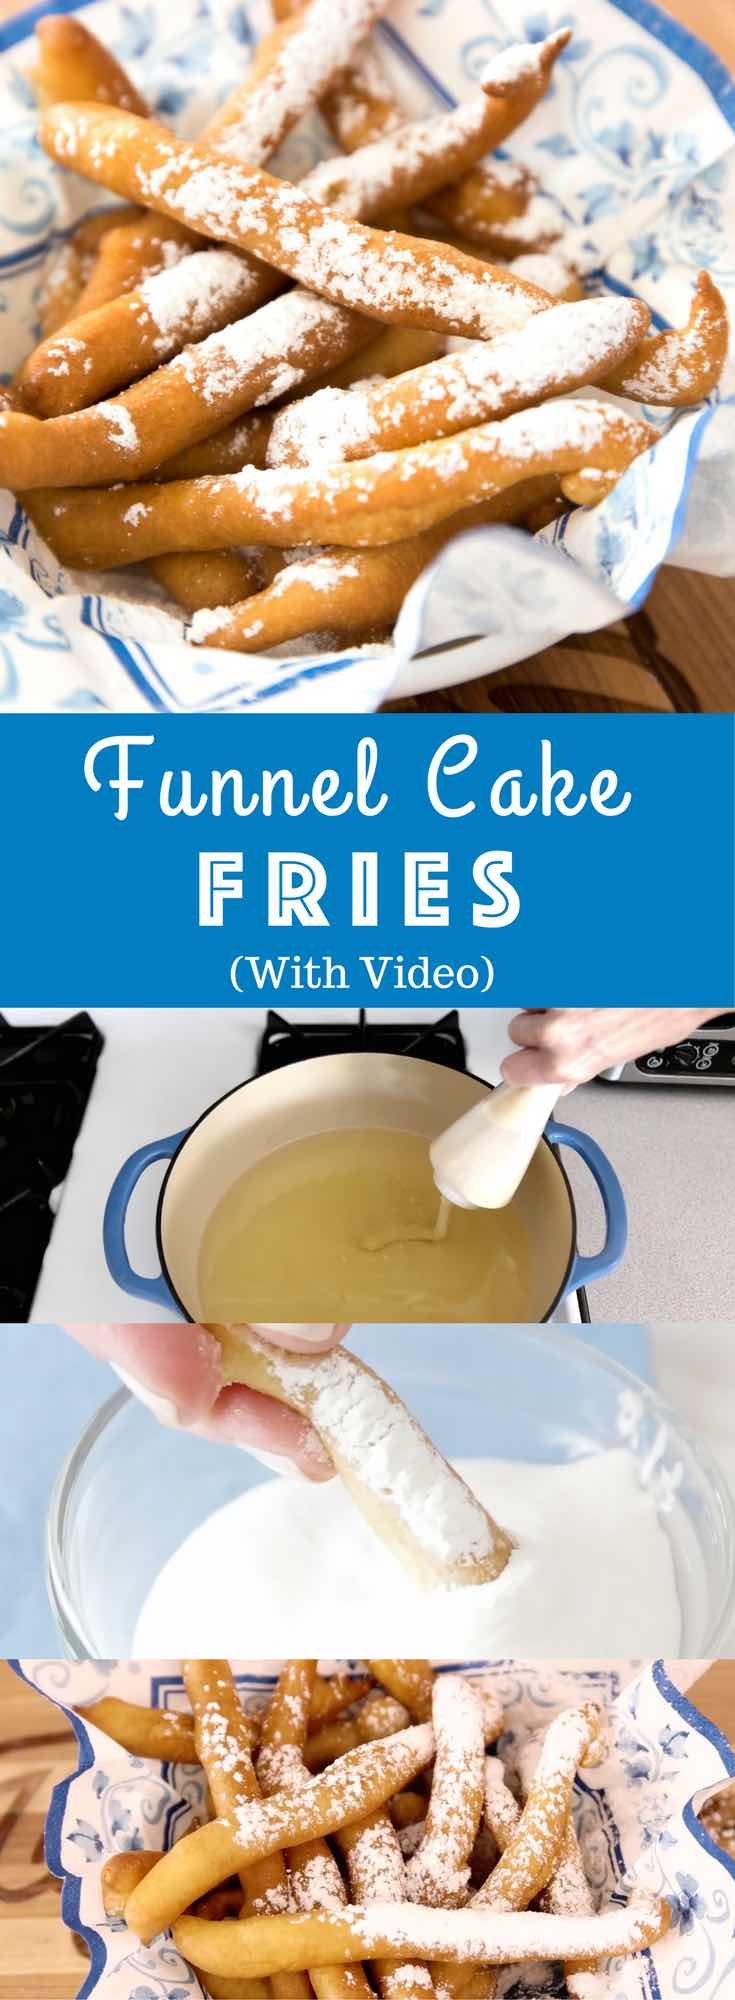 Easy Funnel Cake Fries – delicious cake batter is fried to perfect golden crispy fries. Served with some caramel sauce or a